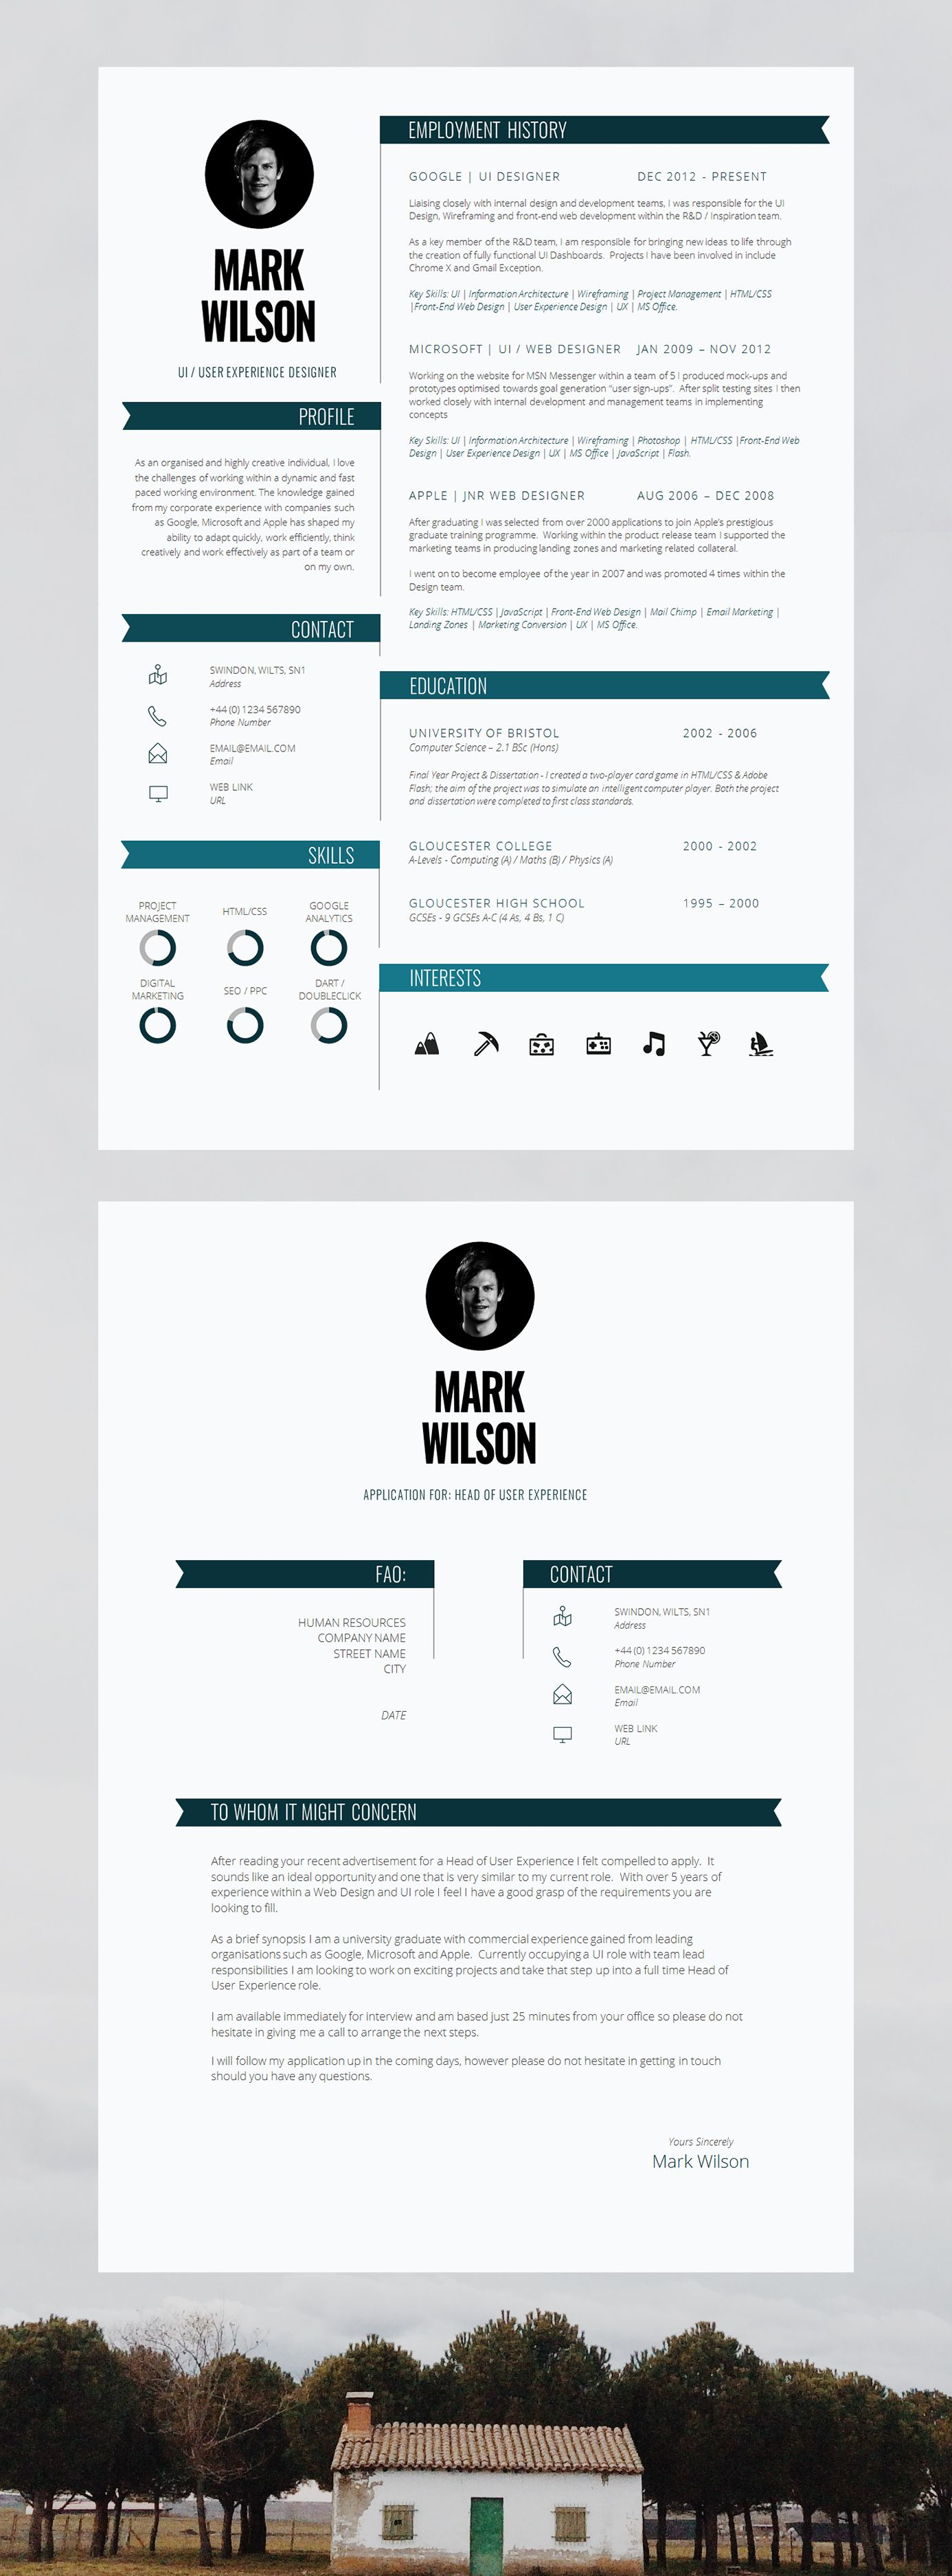 a resume guide and cv template rolled up into one handy